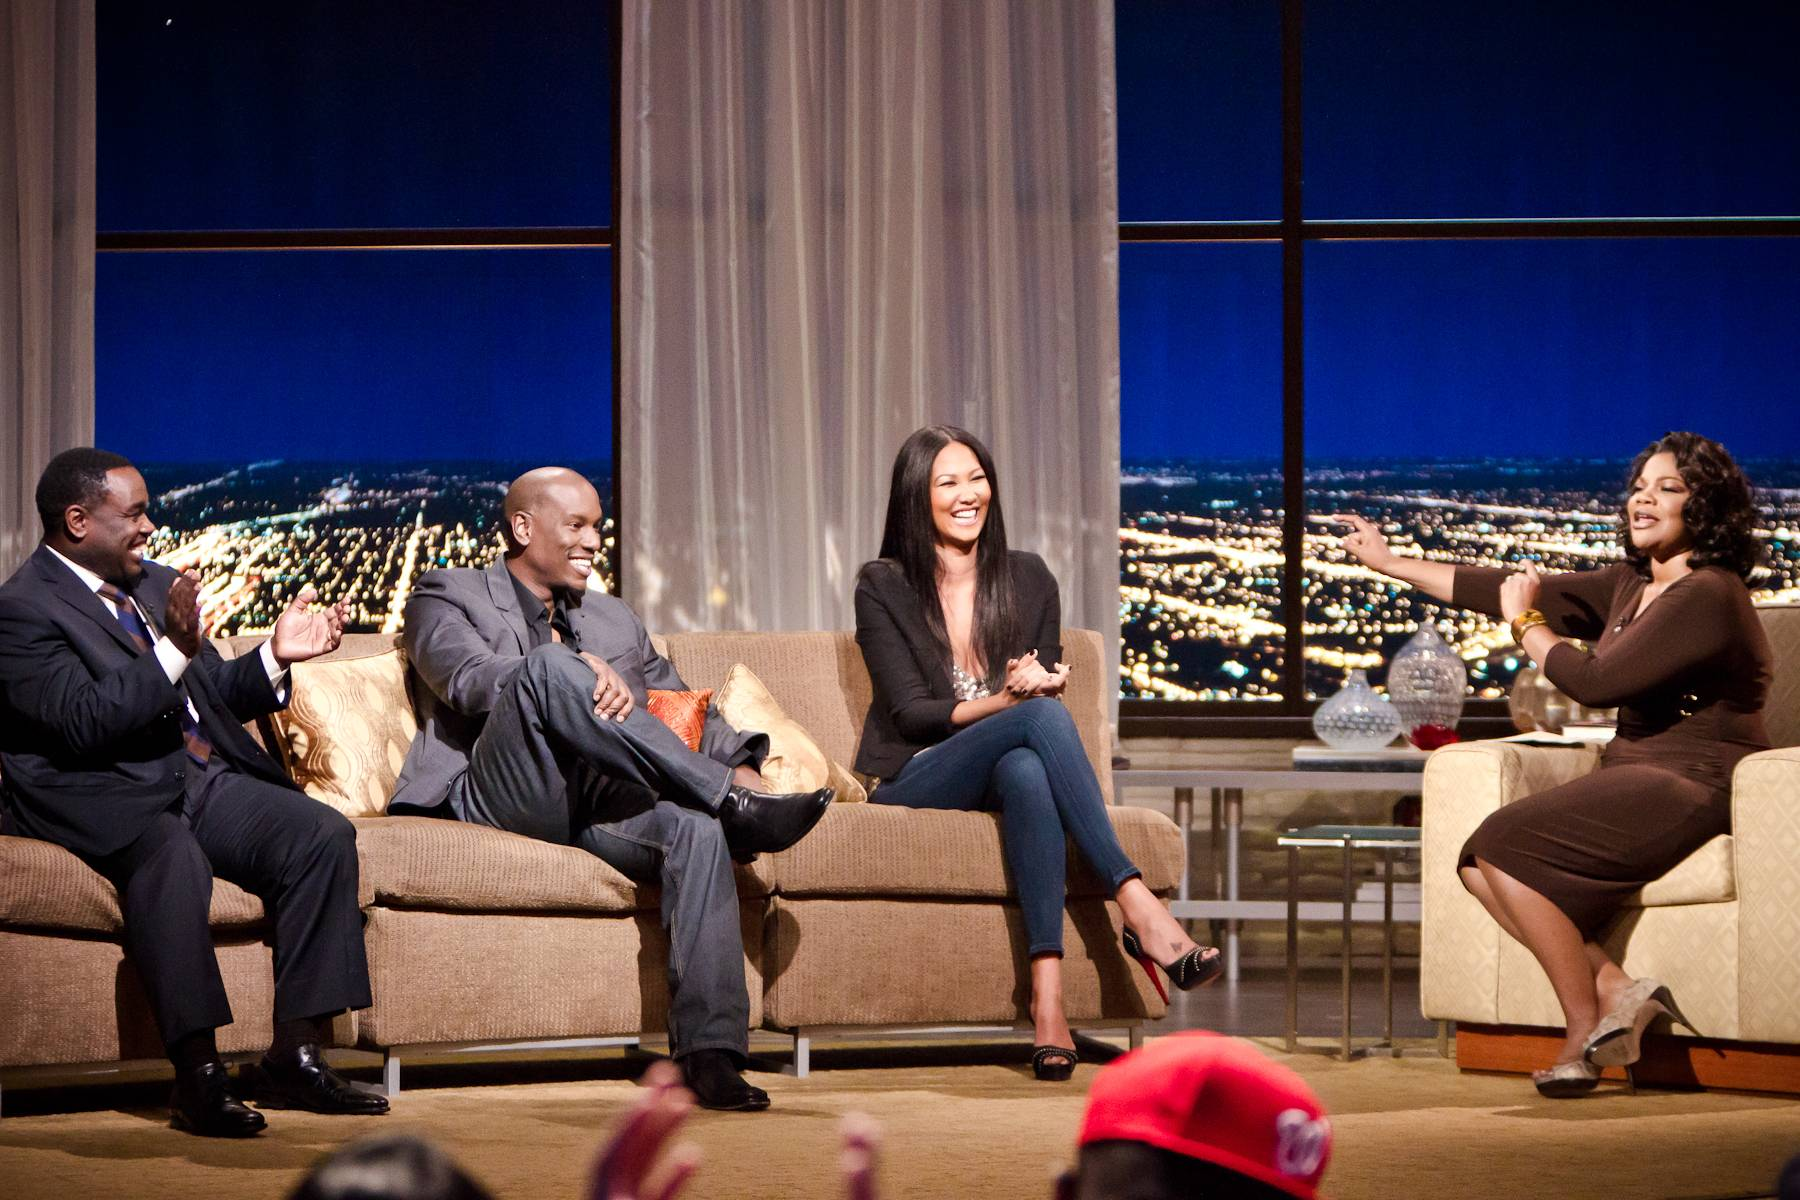 Reporting From the Fab Lane - Kimora Lee Simmons jumps into the Penthouse to discuss her latest ventures.(Photo: Darnell Williams/BET)